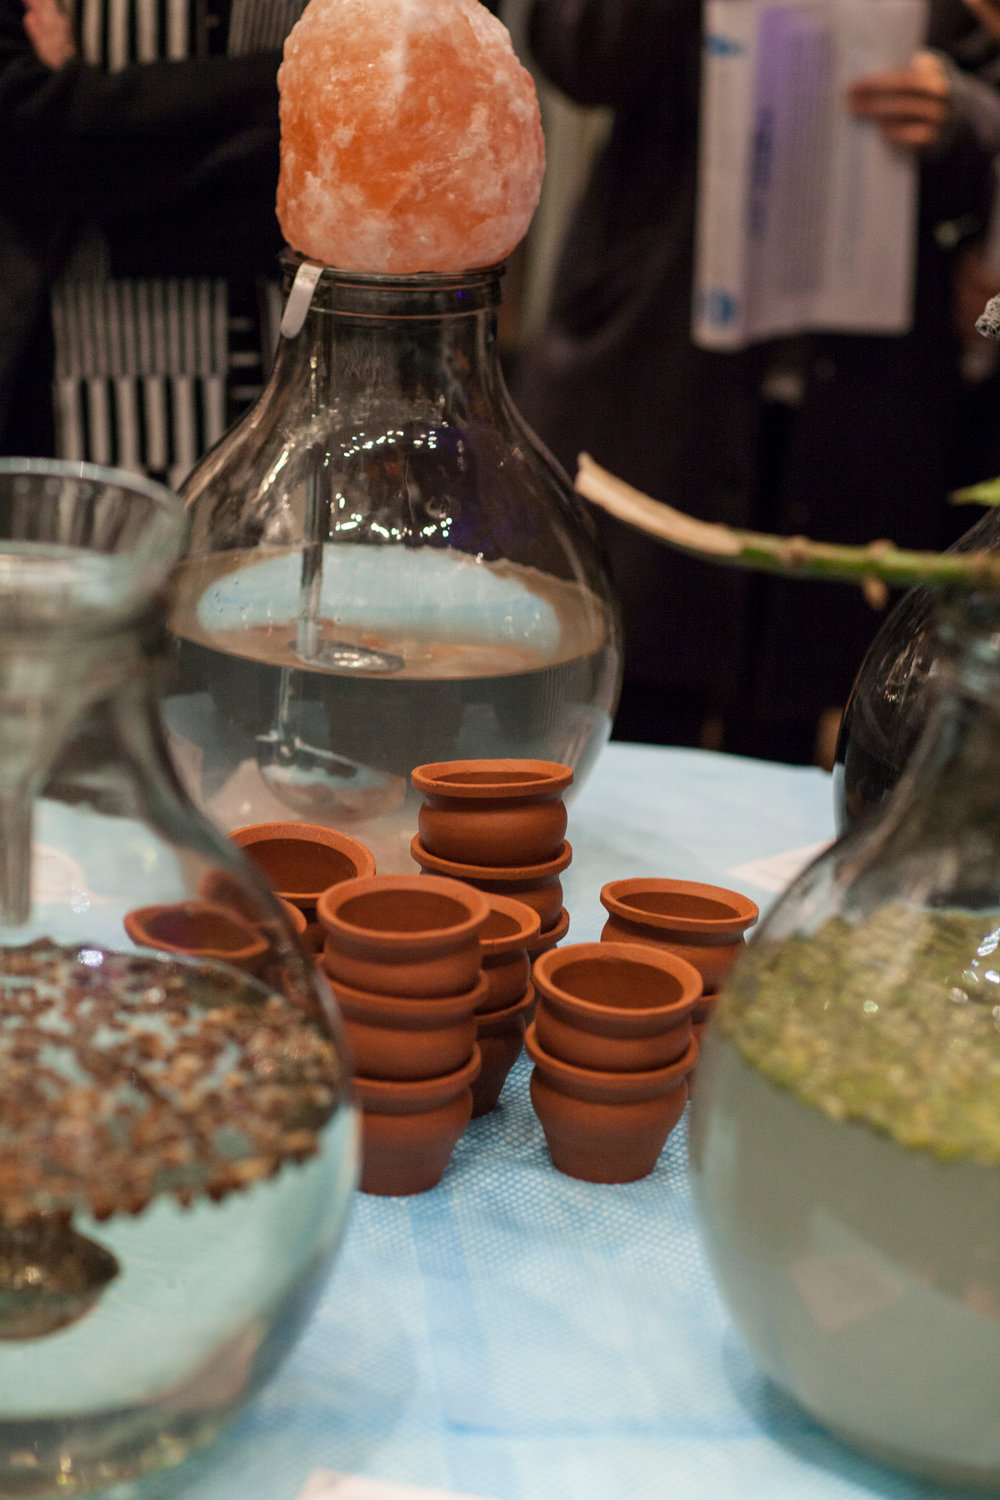 Water tastings by Arabeschi di Latte at 'The Source', in the ceramics gallery at the V & A Museum